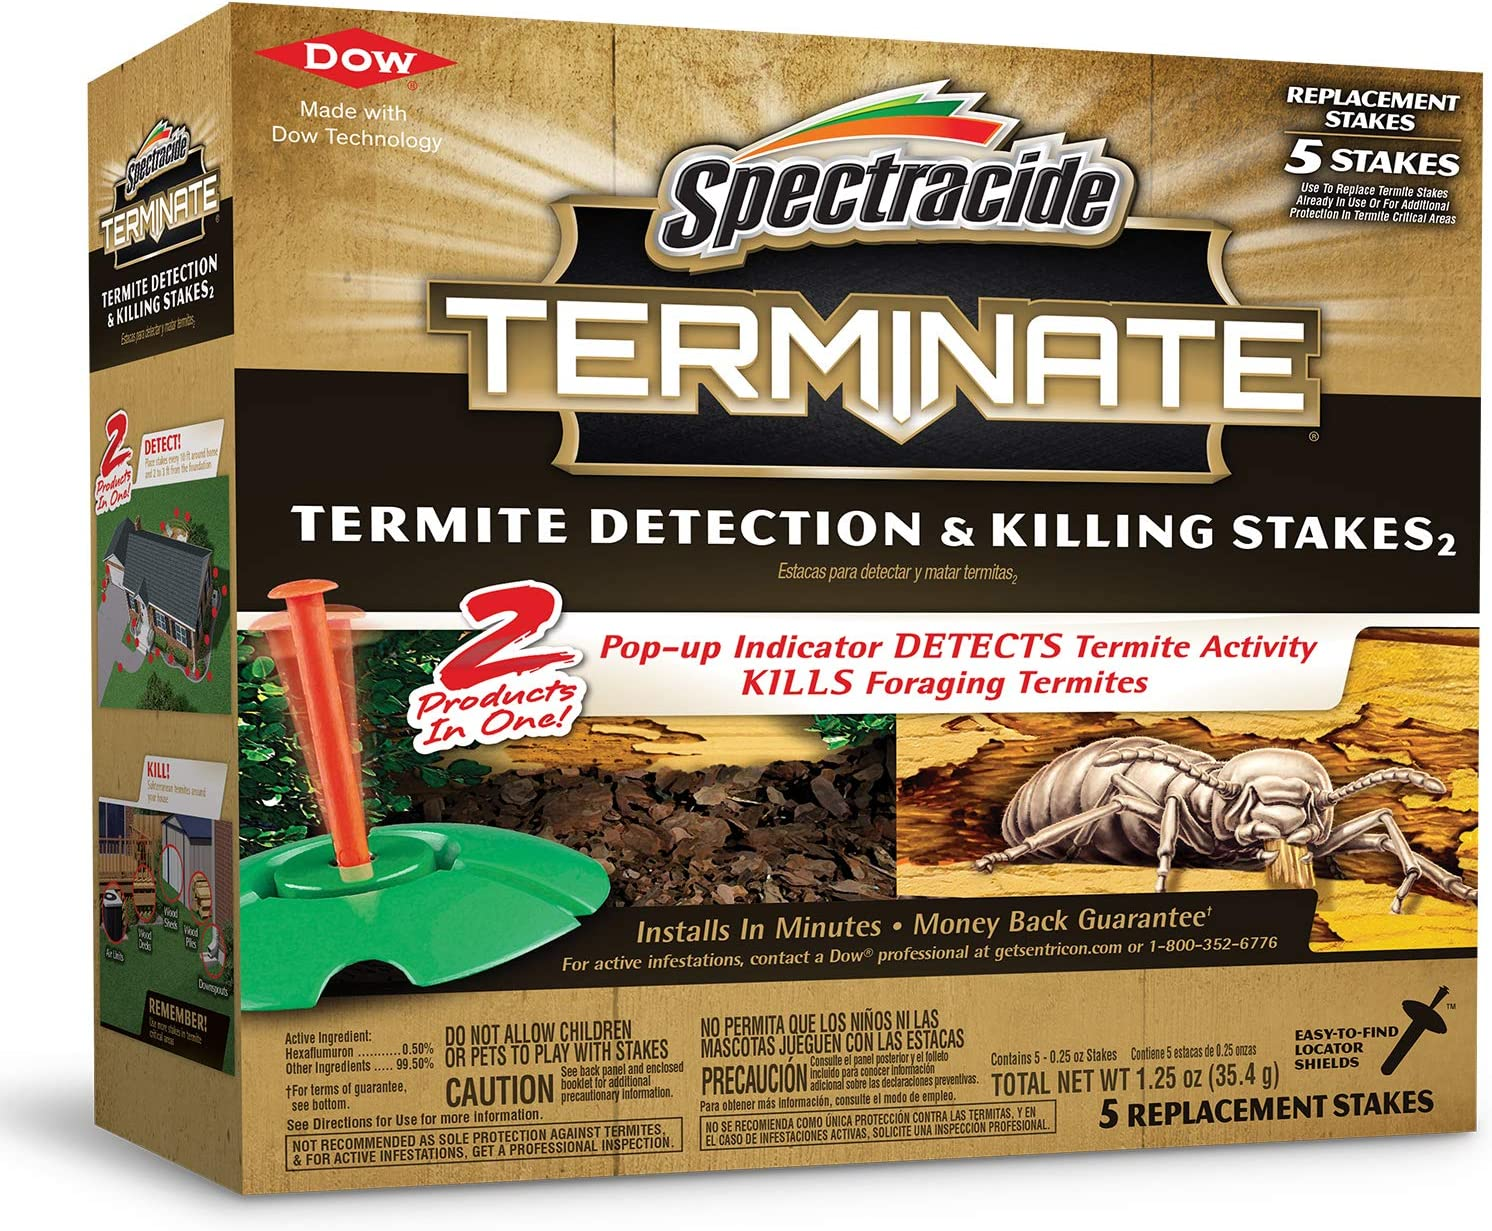 Terminate Refill Stakes 5-Count Termite Killer (96116) : Home Pest Repellents : Garden & Outdoor